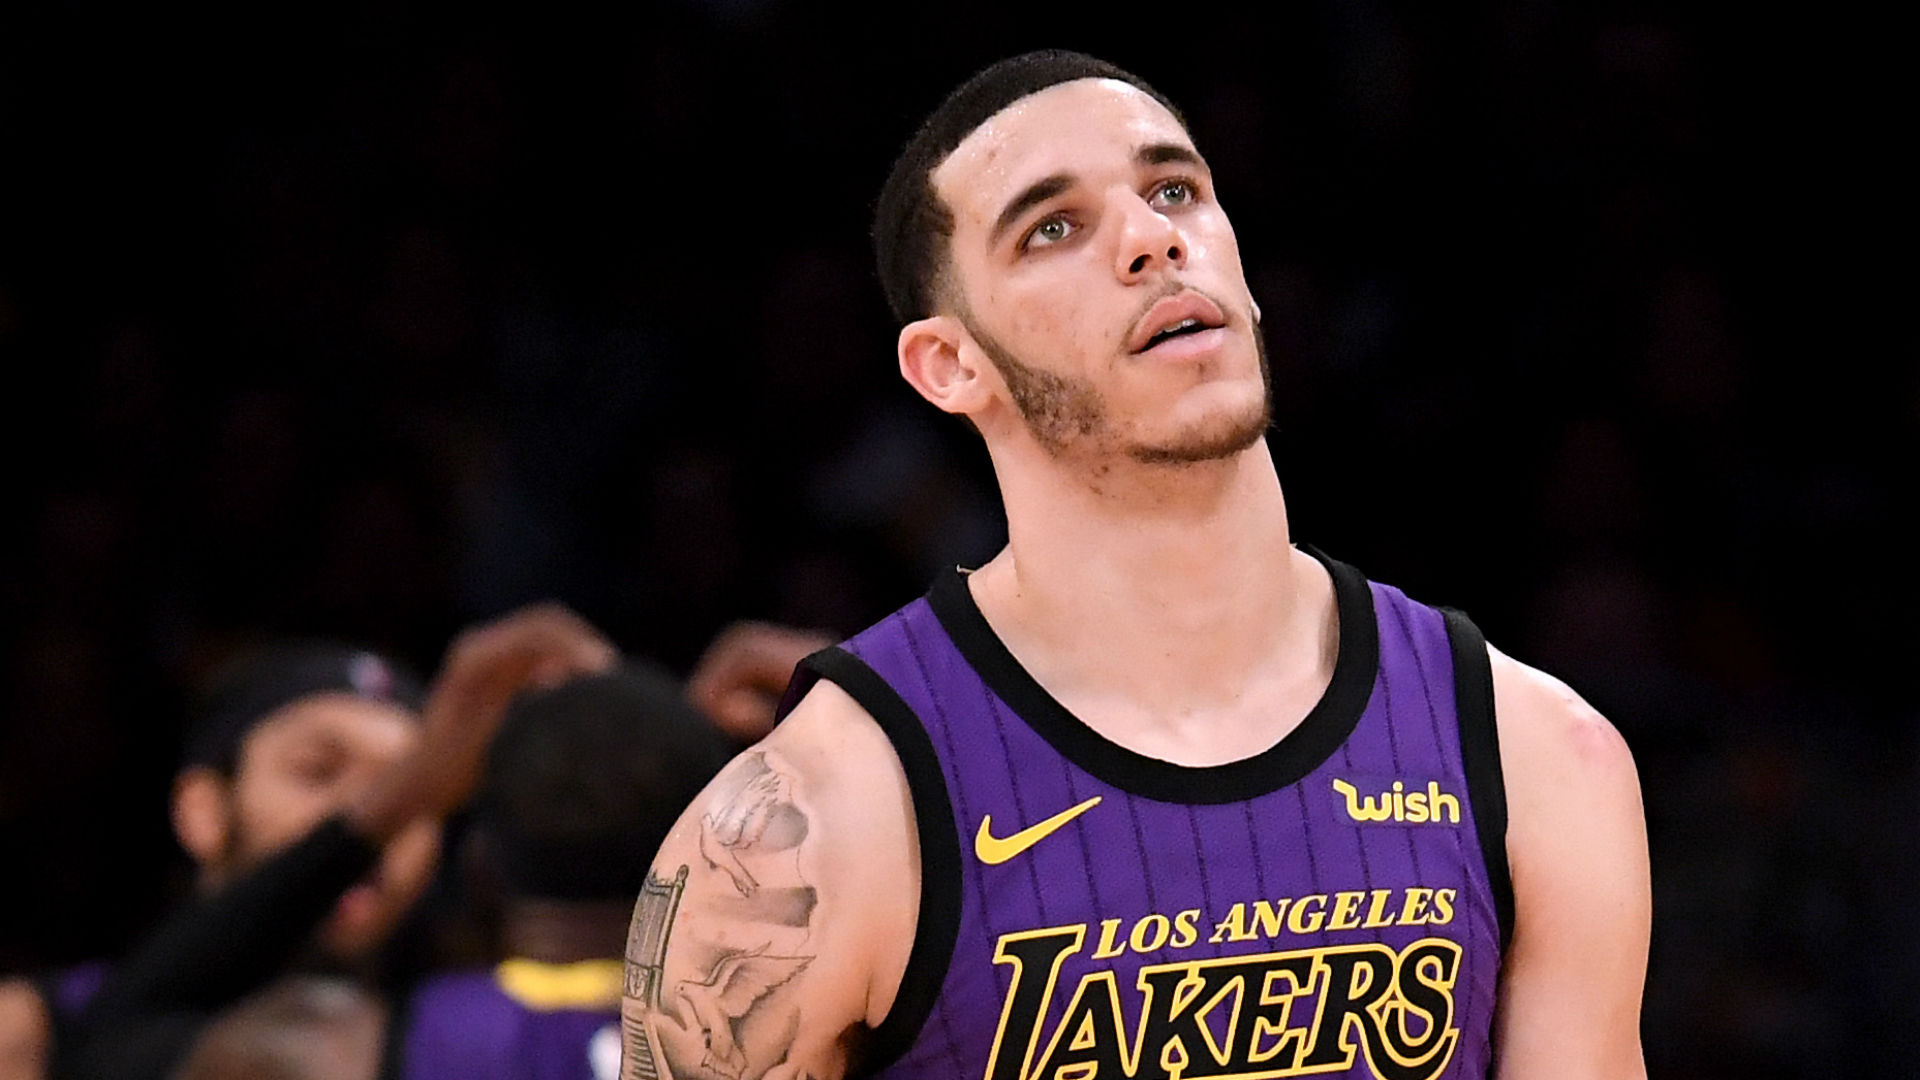 Lakers asked Lonzo Ball if Big Baller Brand shoes were part of ankle problems